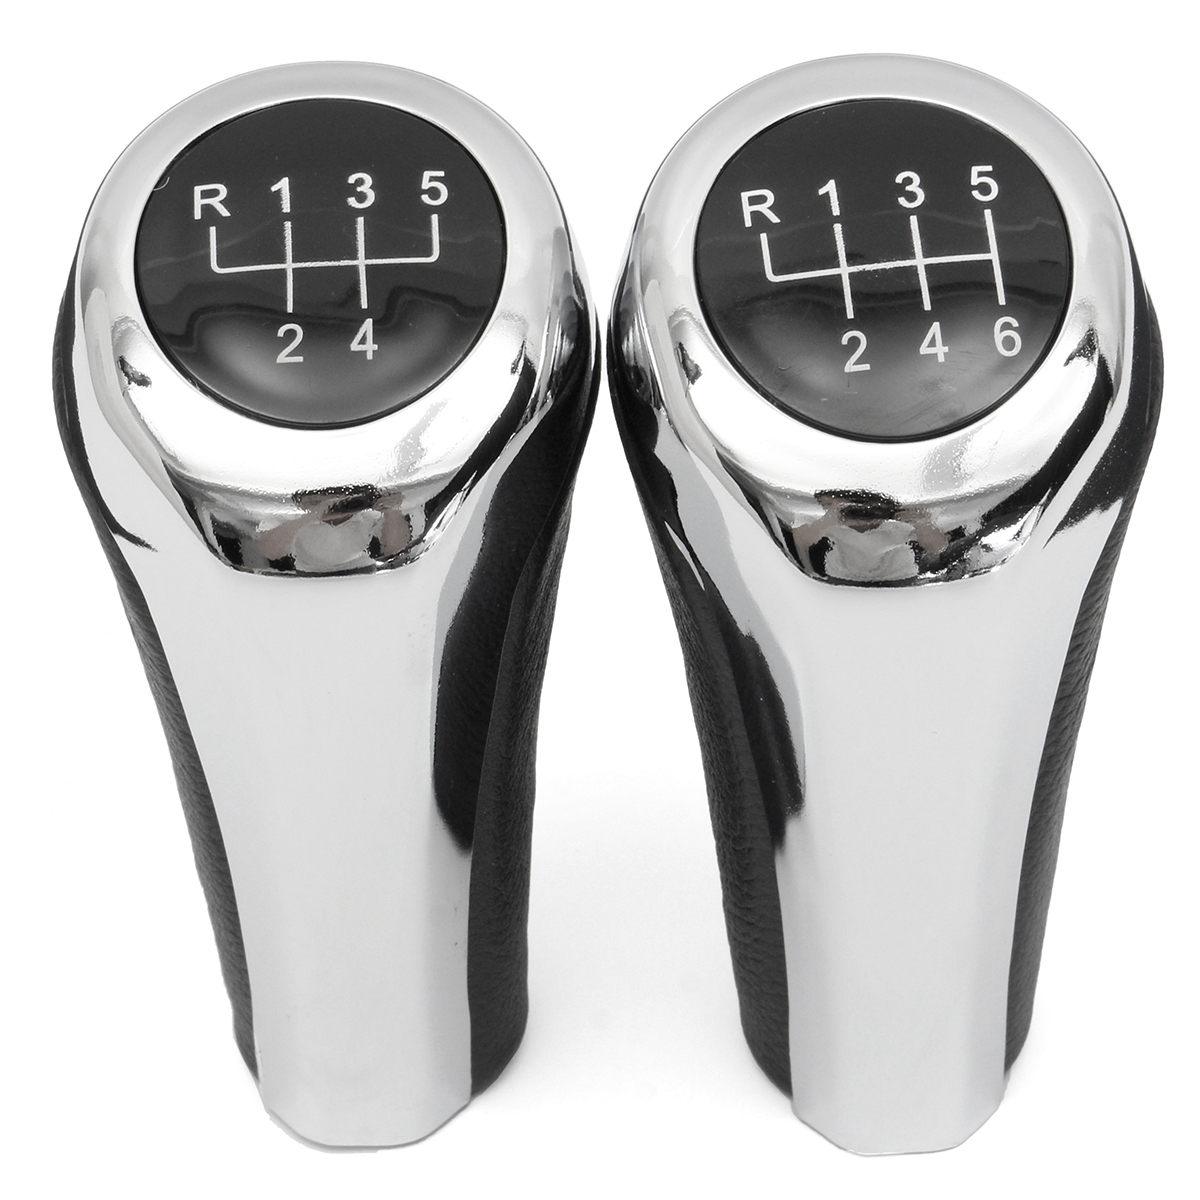 5 6 Speed Leather Chrome Aluminum Manual Gear Shift Knob For BMW